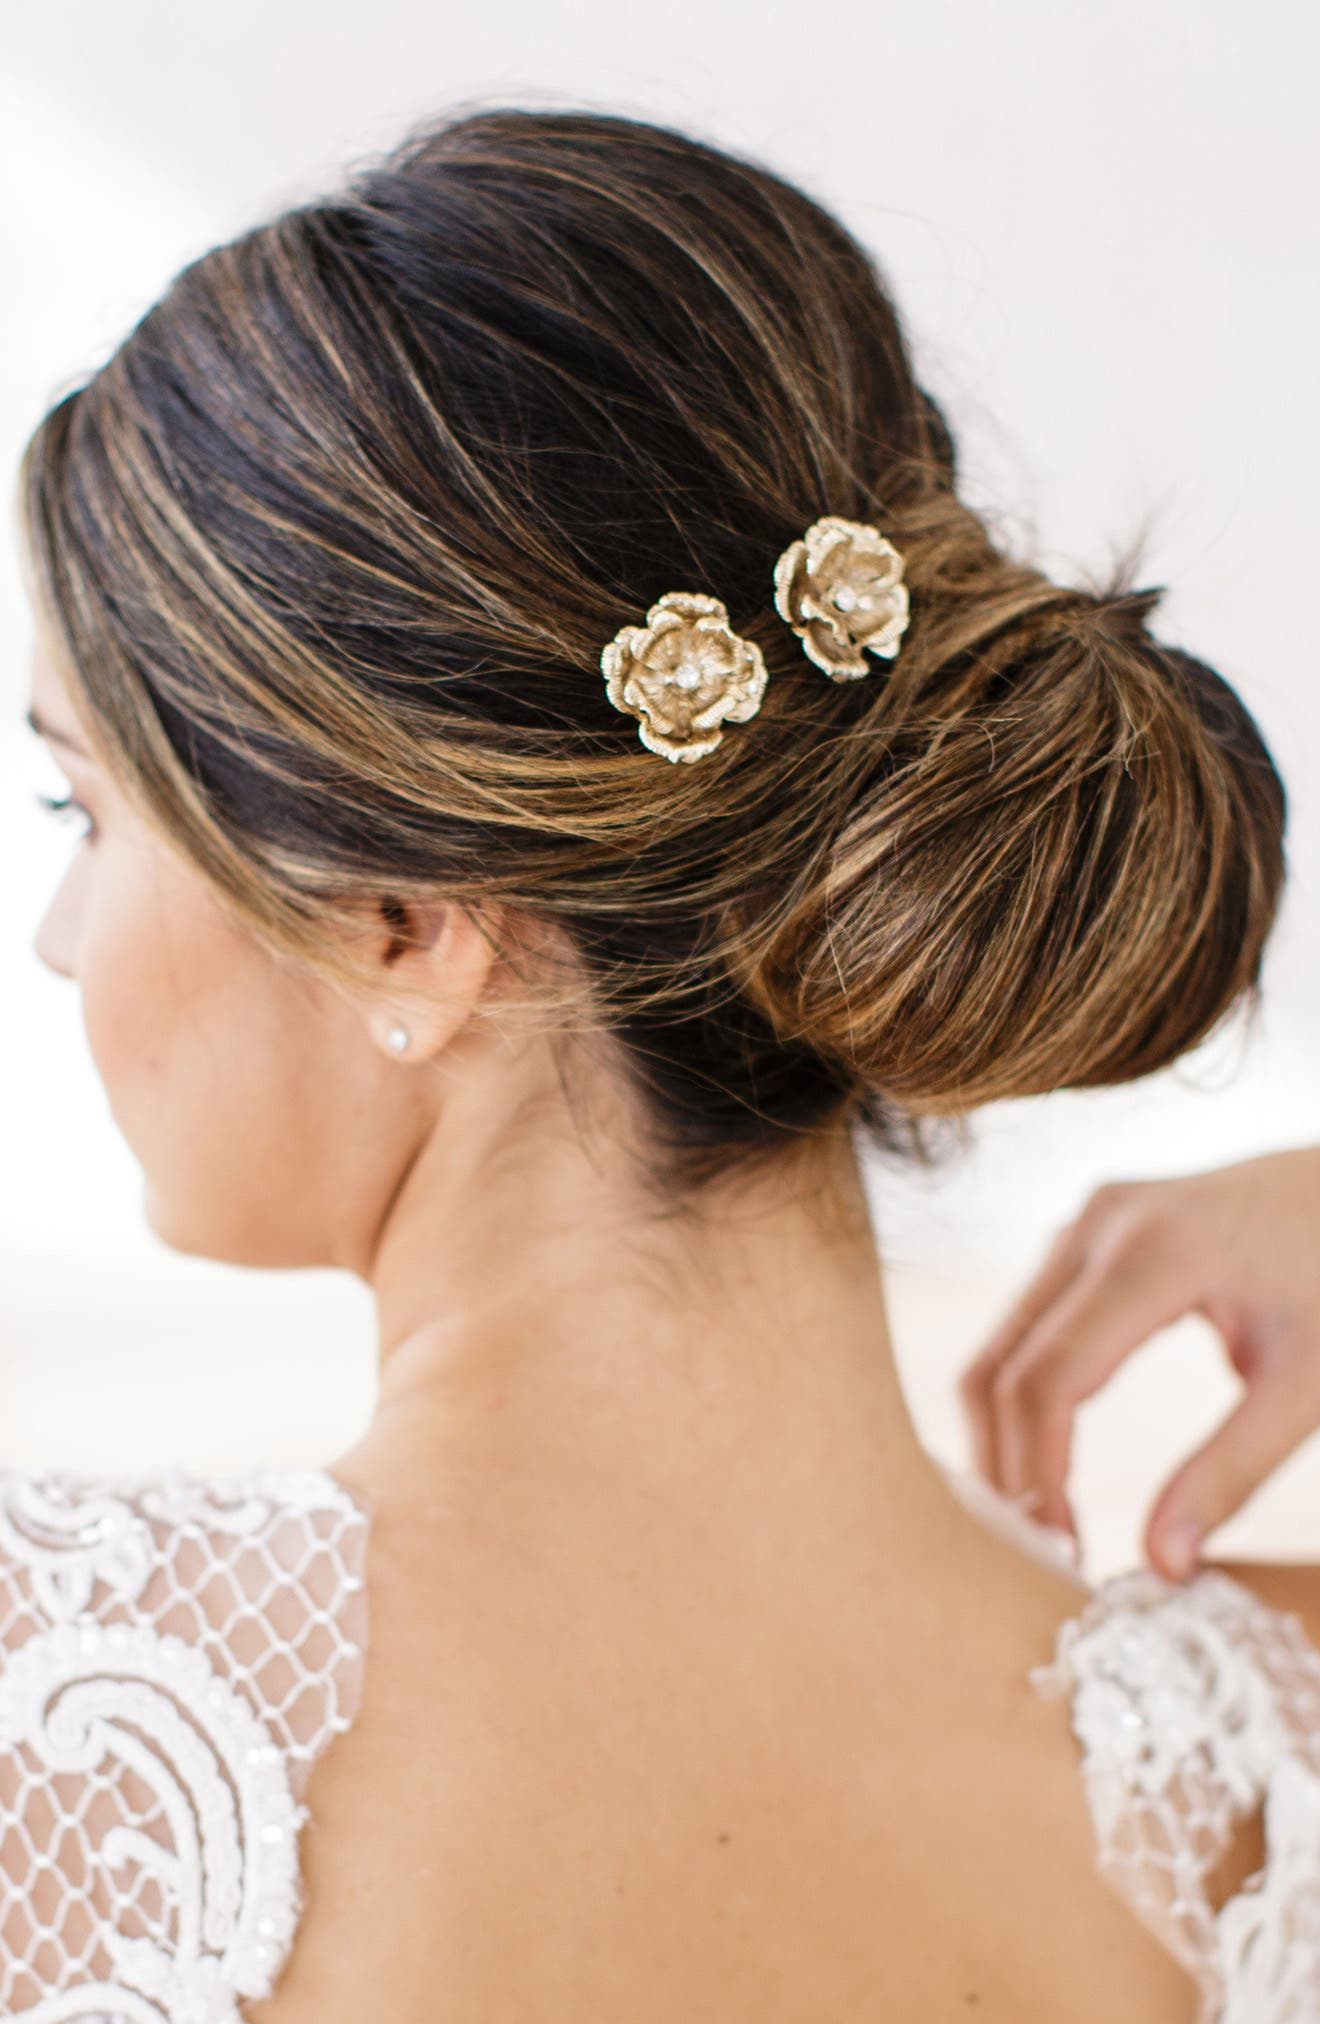 Alternate Image 1 Selected - Brides & Hairpins Renata Pin